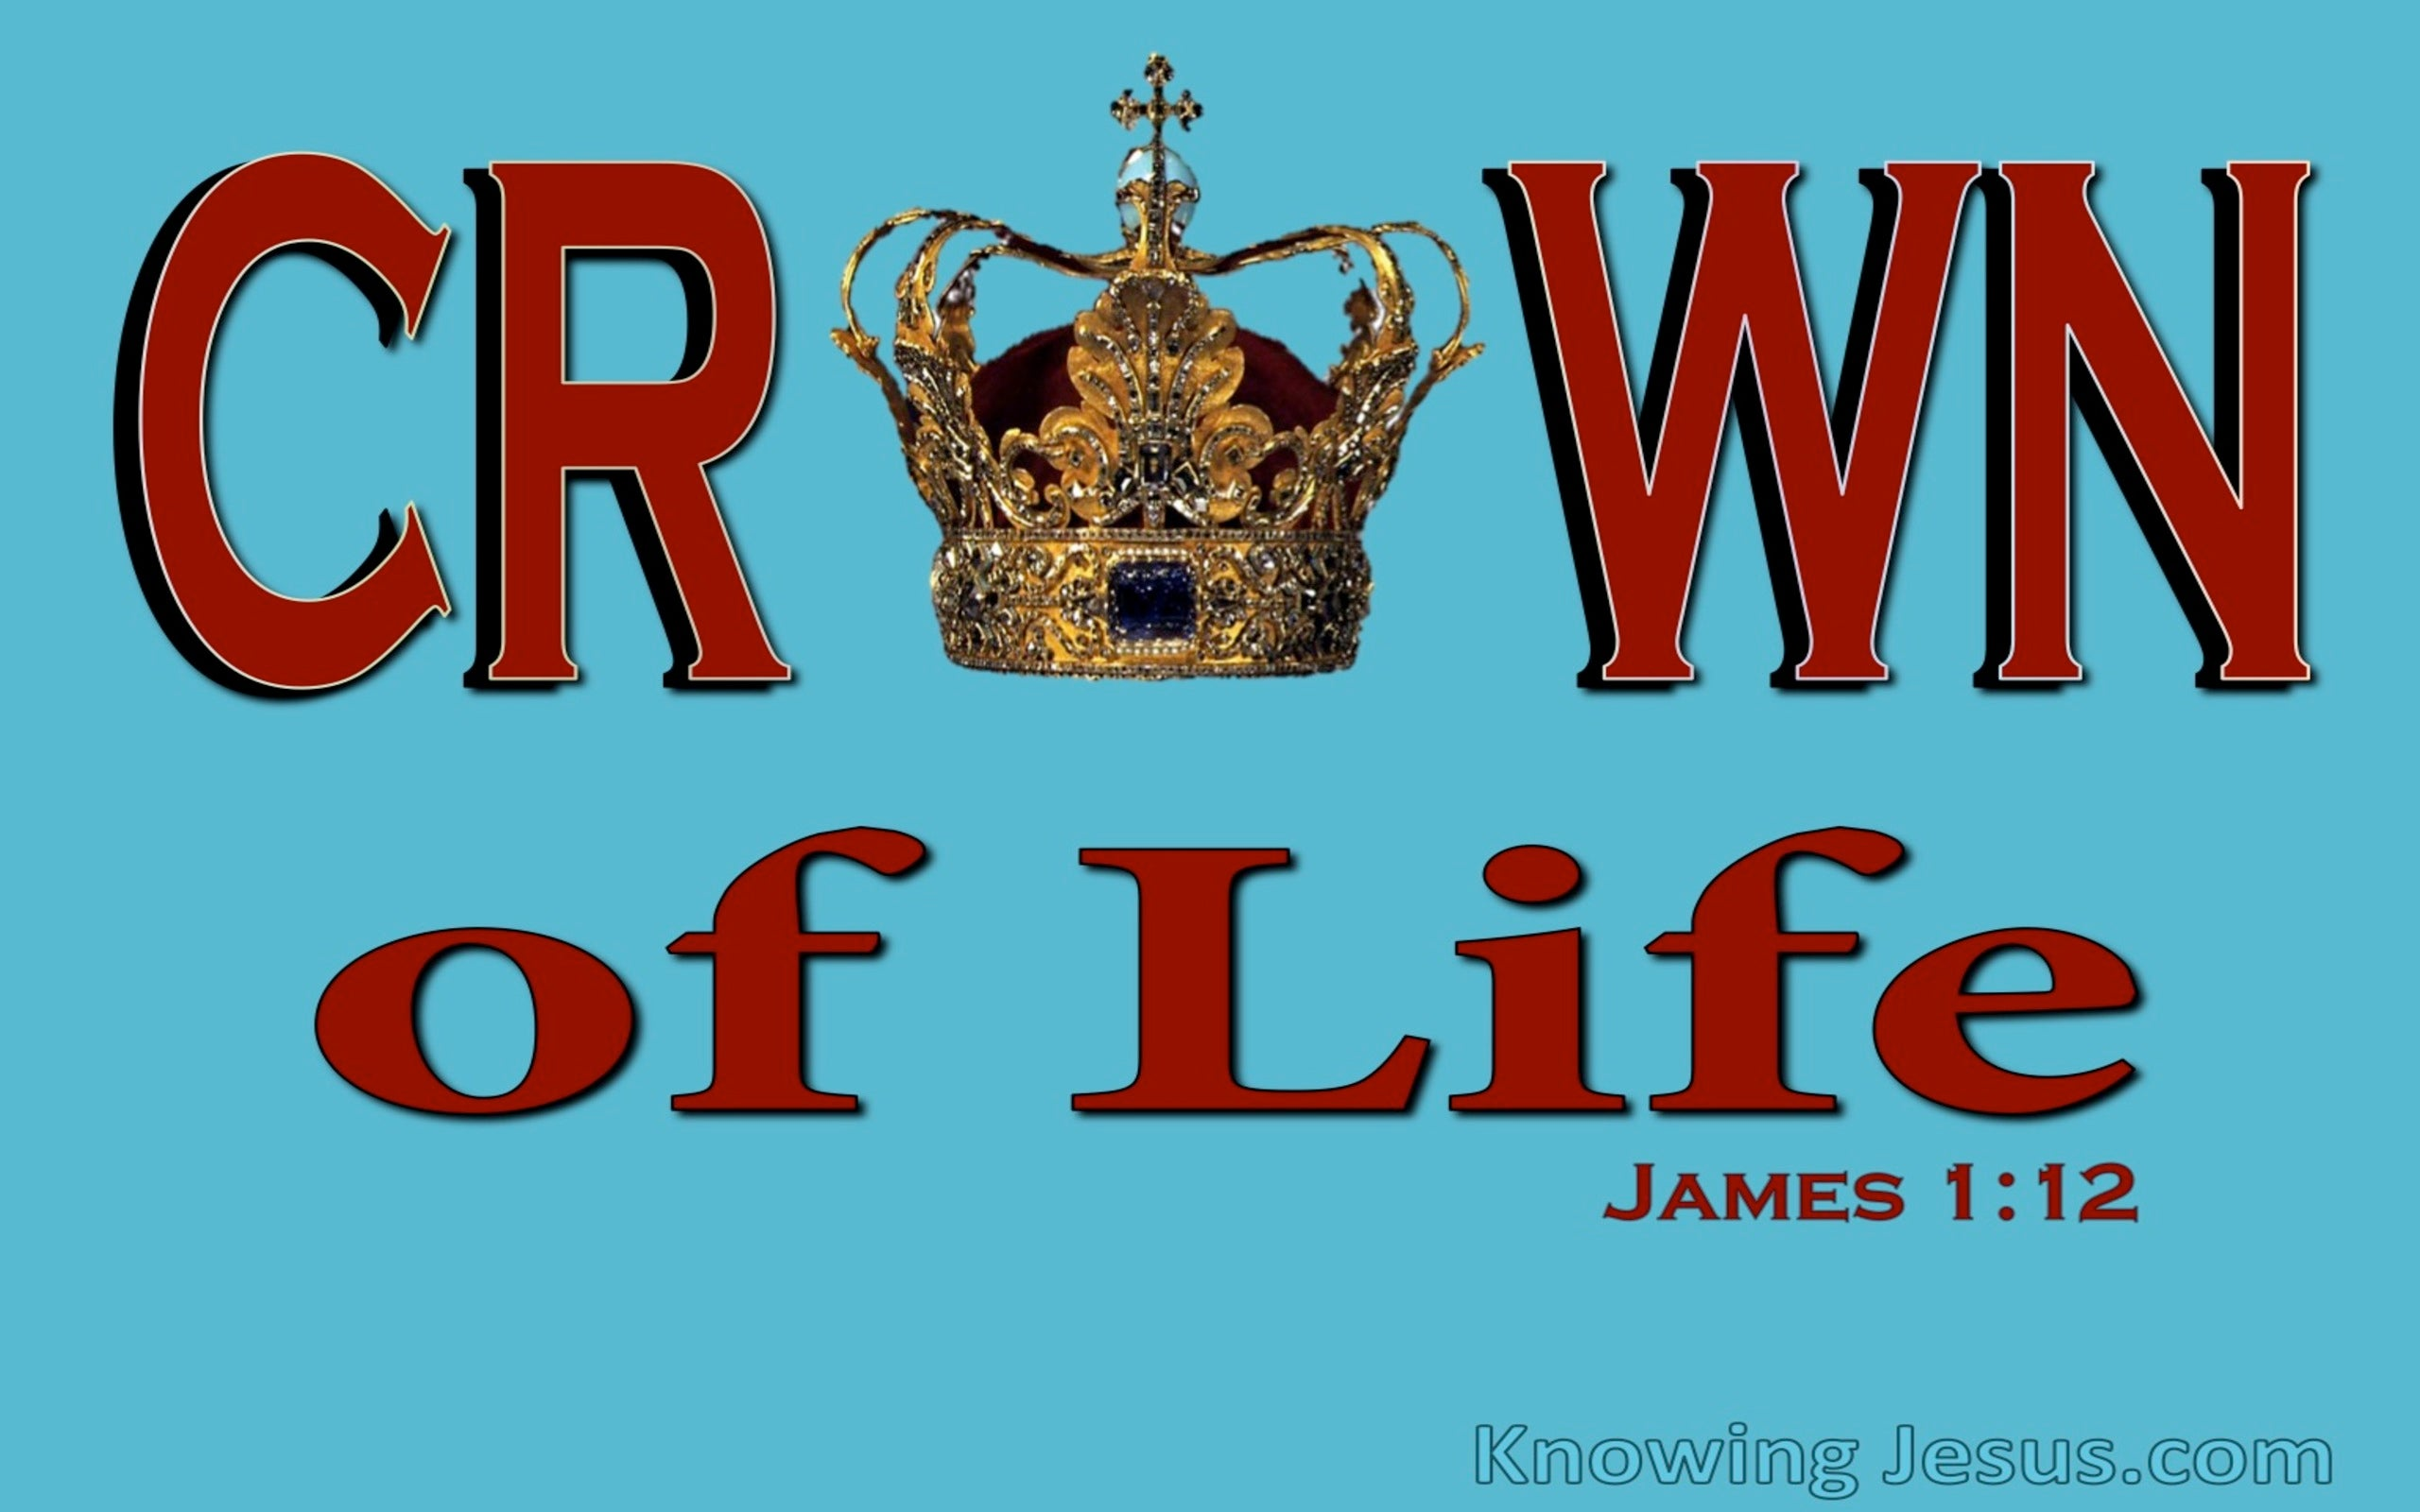 Spiritual Truth (devotional) (red) - James 1:12